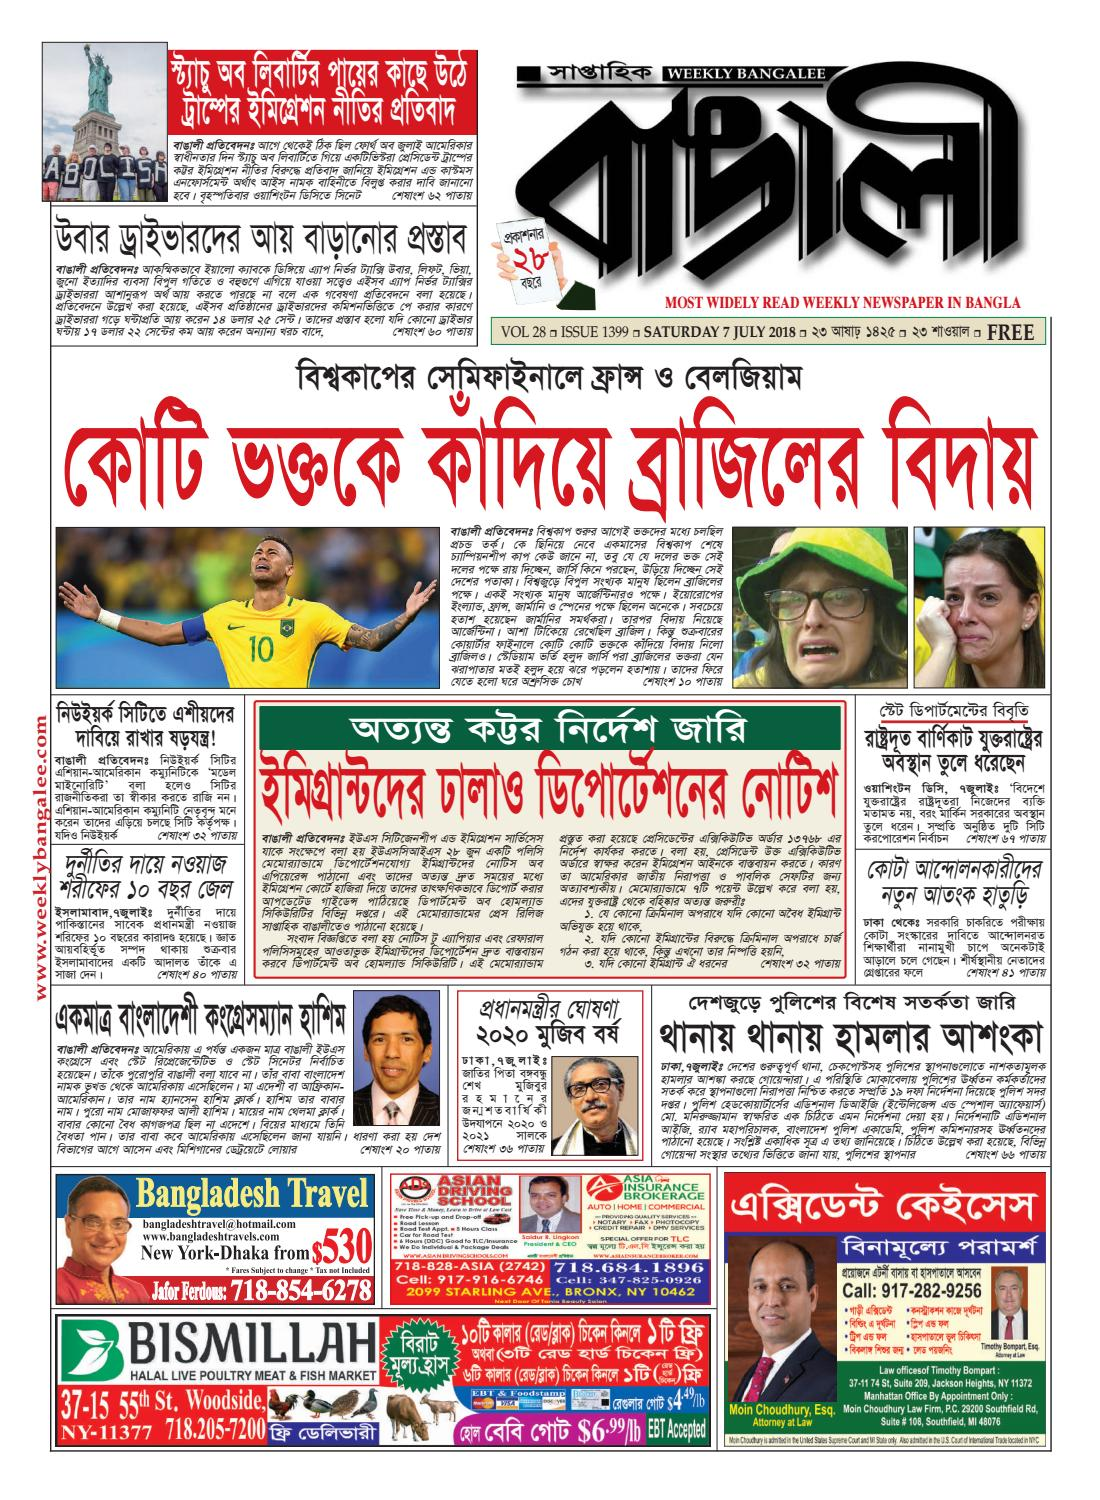 Weekly bangalee july 7 2018 by weekly bangalee issuu altavistaventures